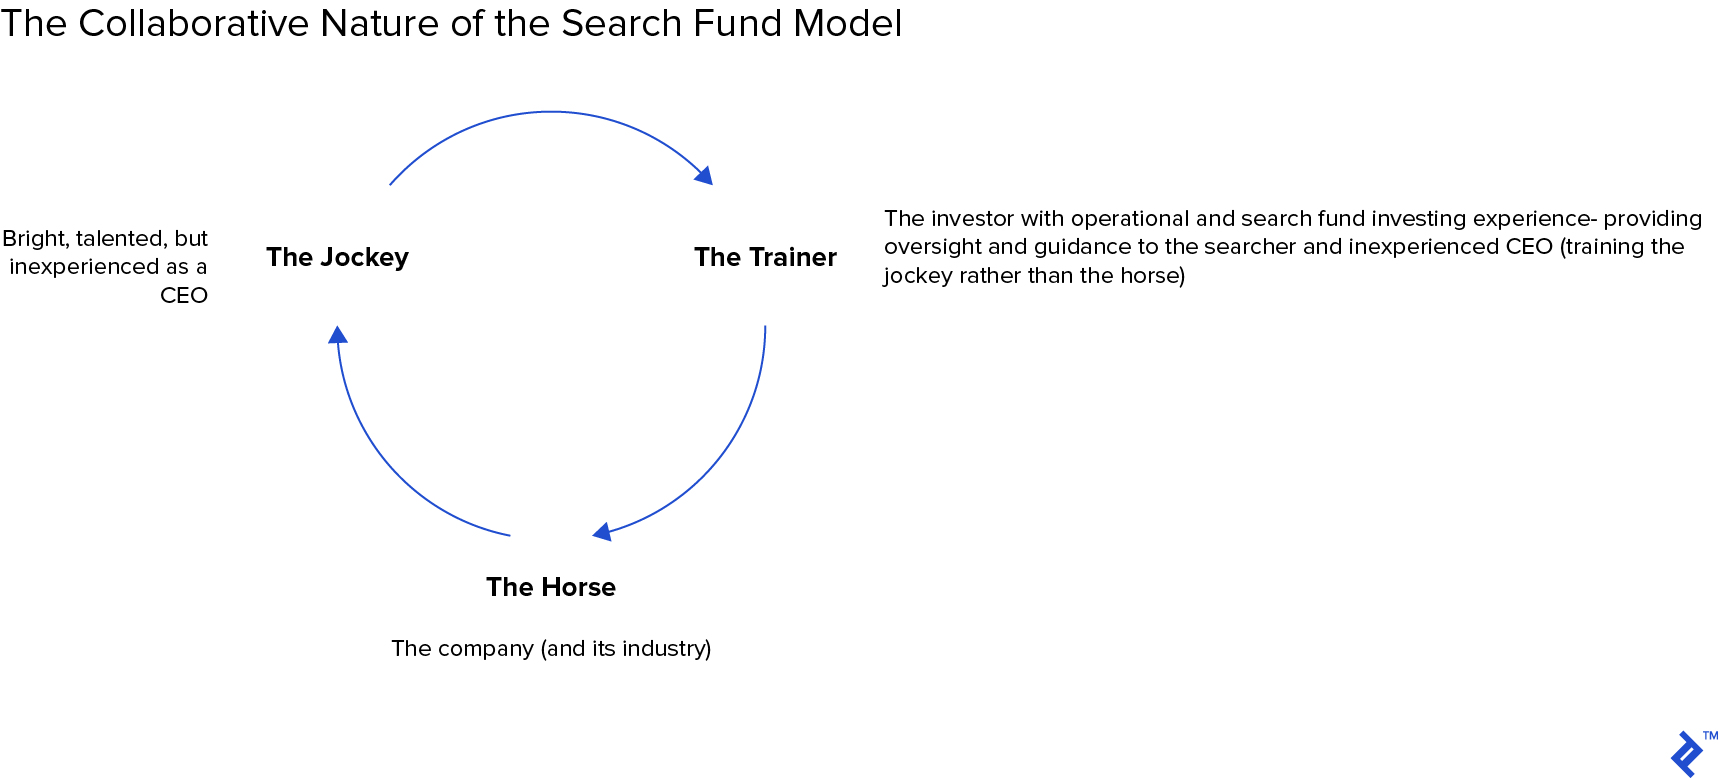 Diagram: The collaborative nature of the search fund model